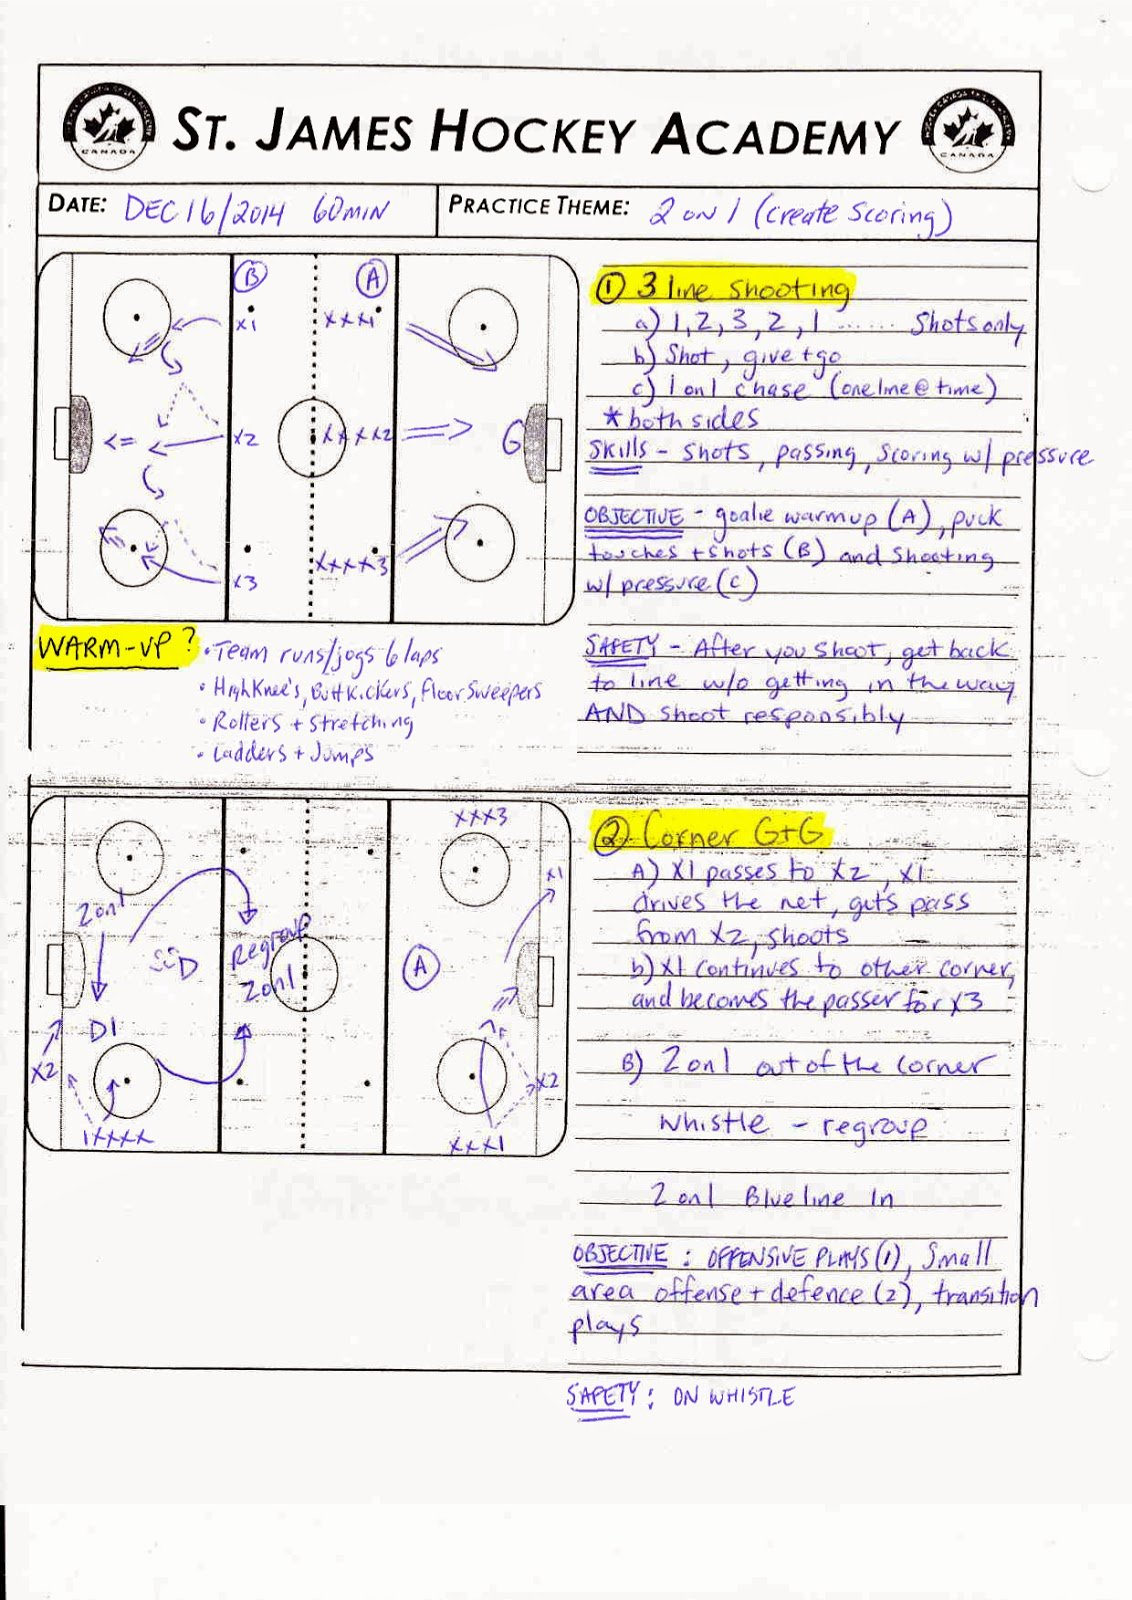 Hockey Practice Plan Template Beautiful St James assiniboia Hockey Academy Grade 11